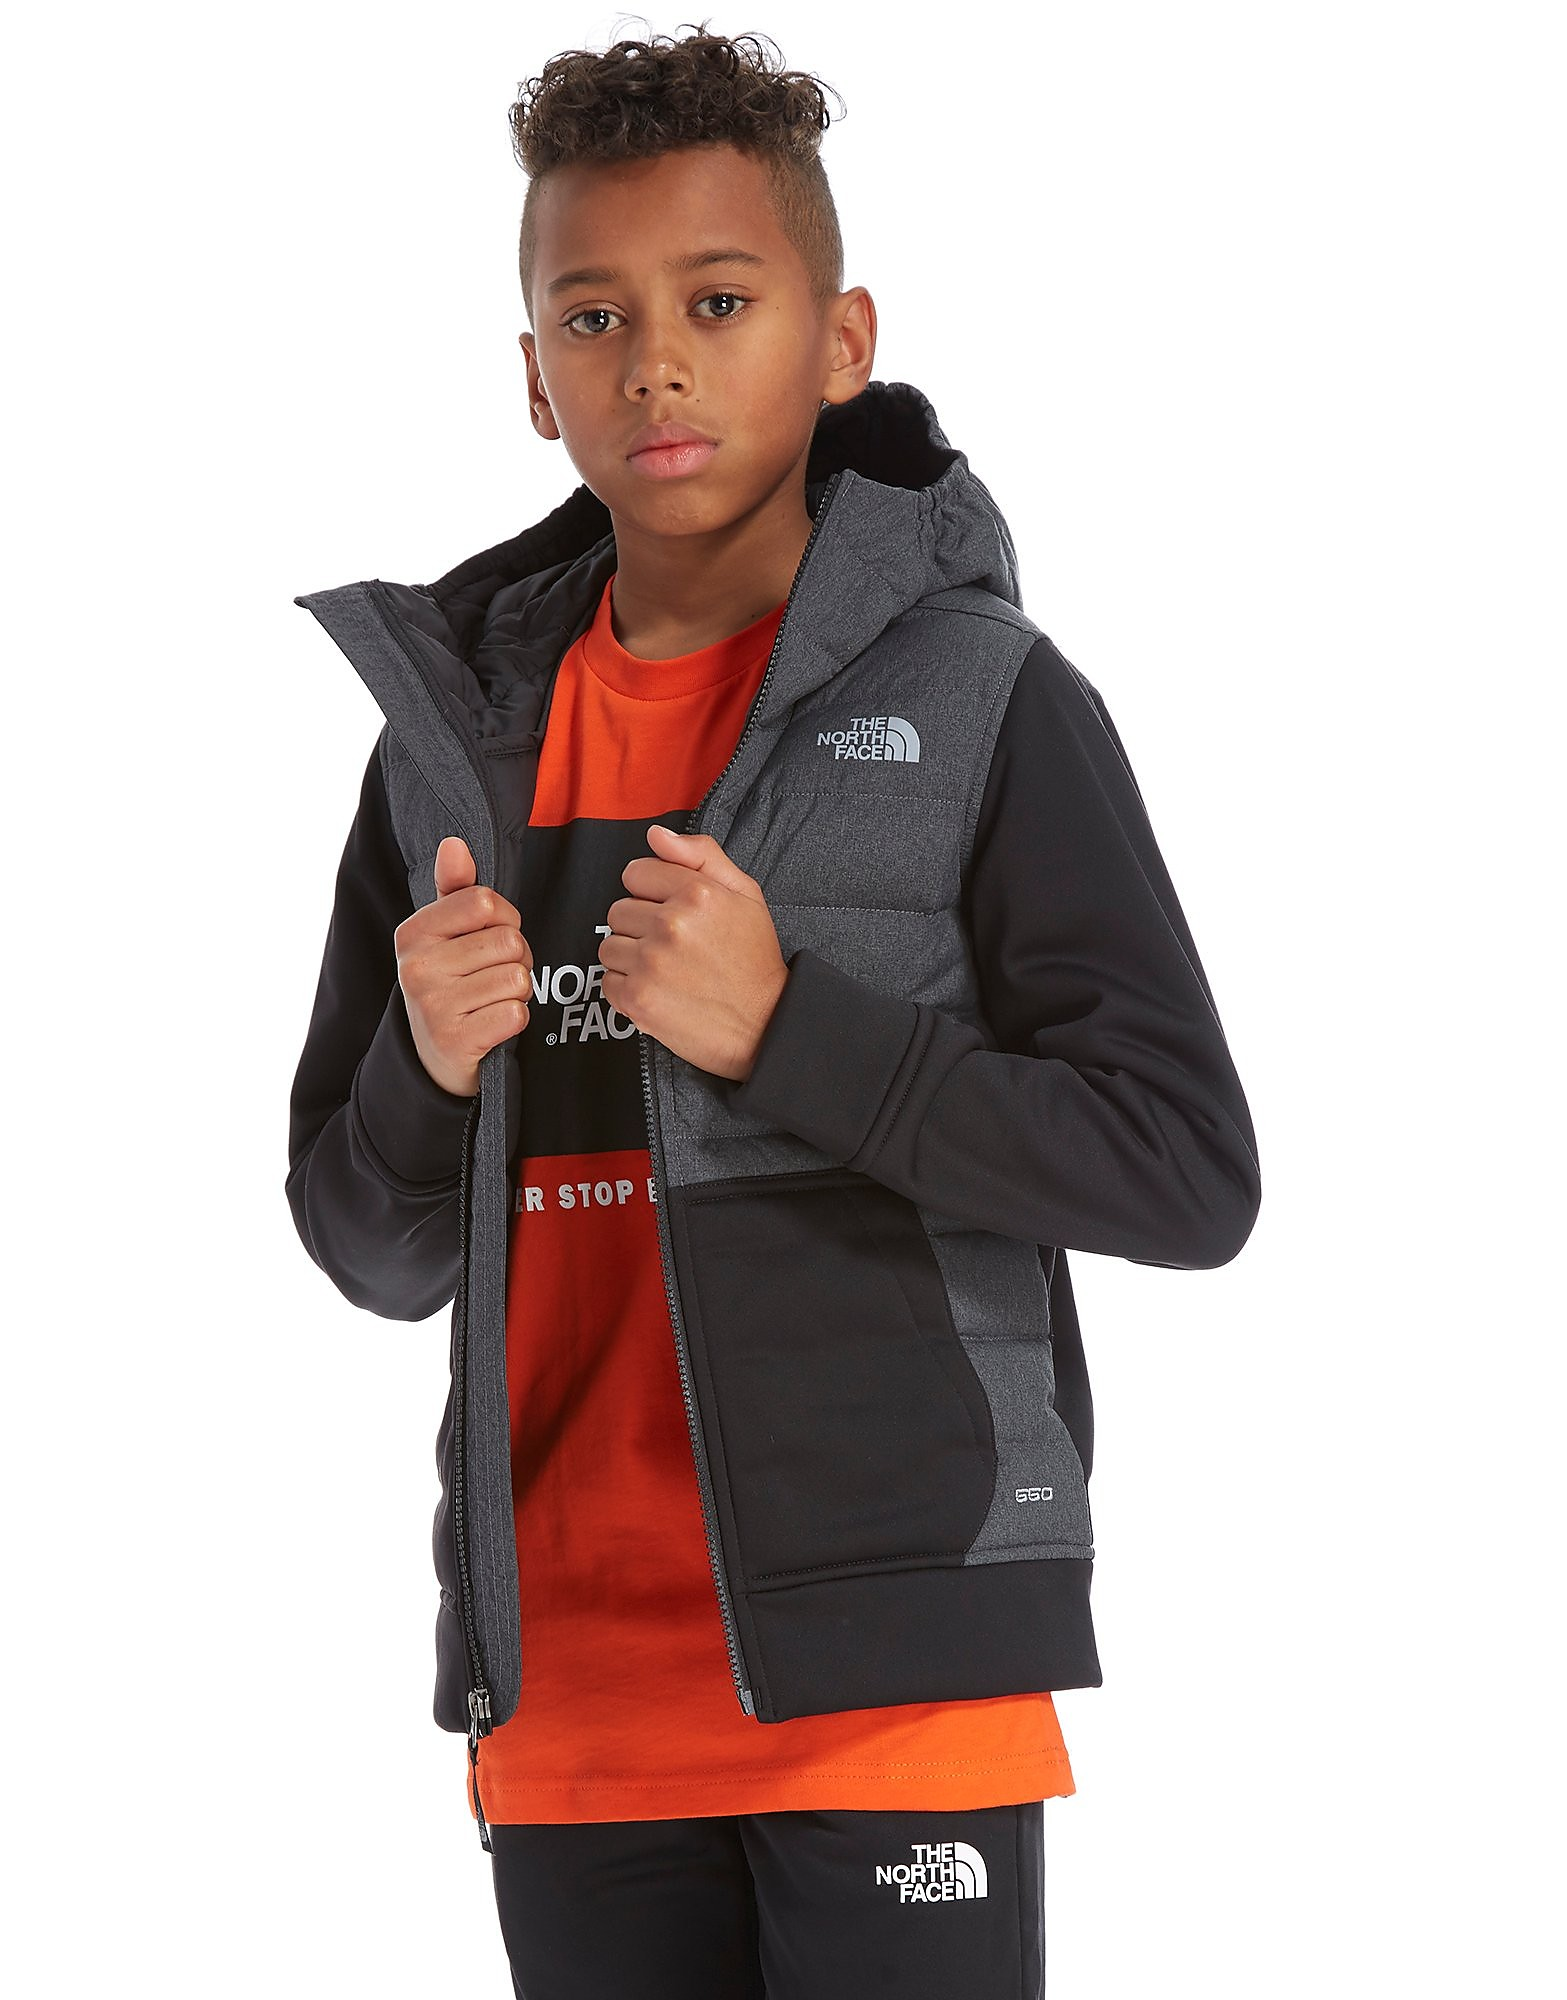 The North Face chaqueta con capucha Mittelegi Down júnior